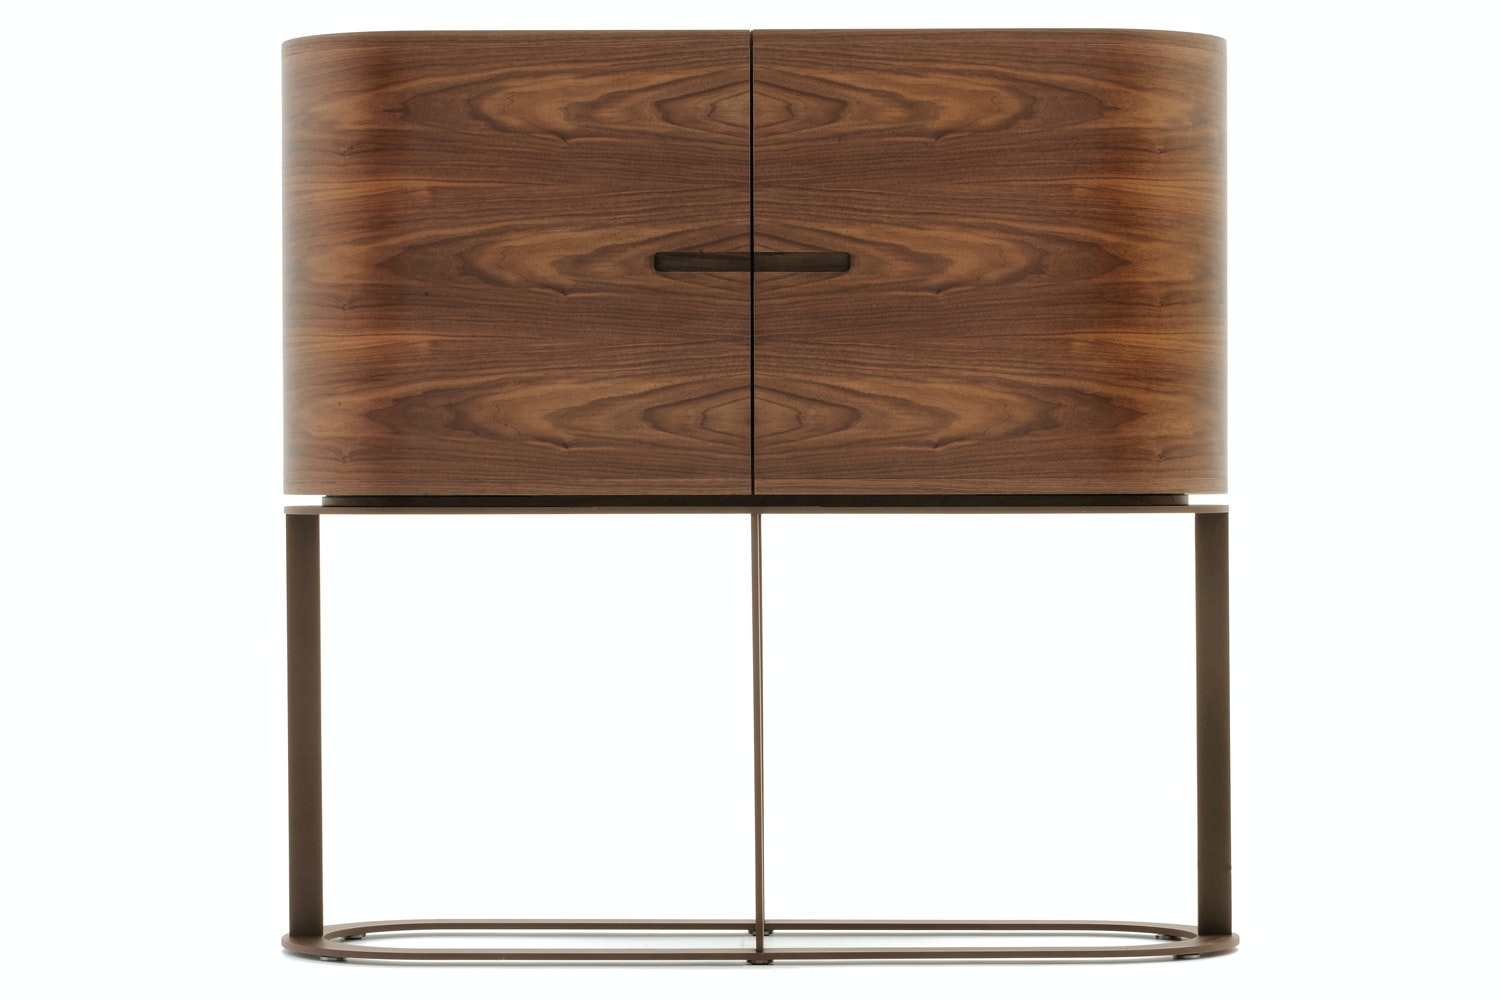 Ino Cabinet by Chi Wing Lo for Giorgetti